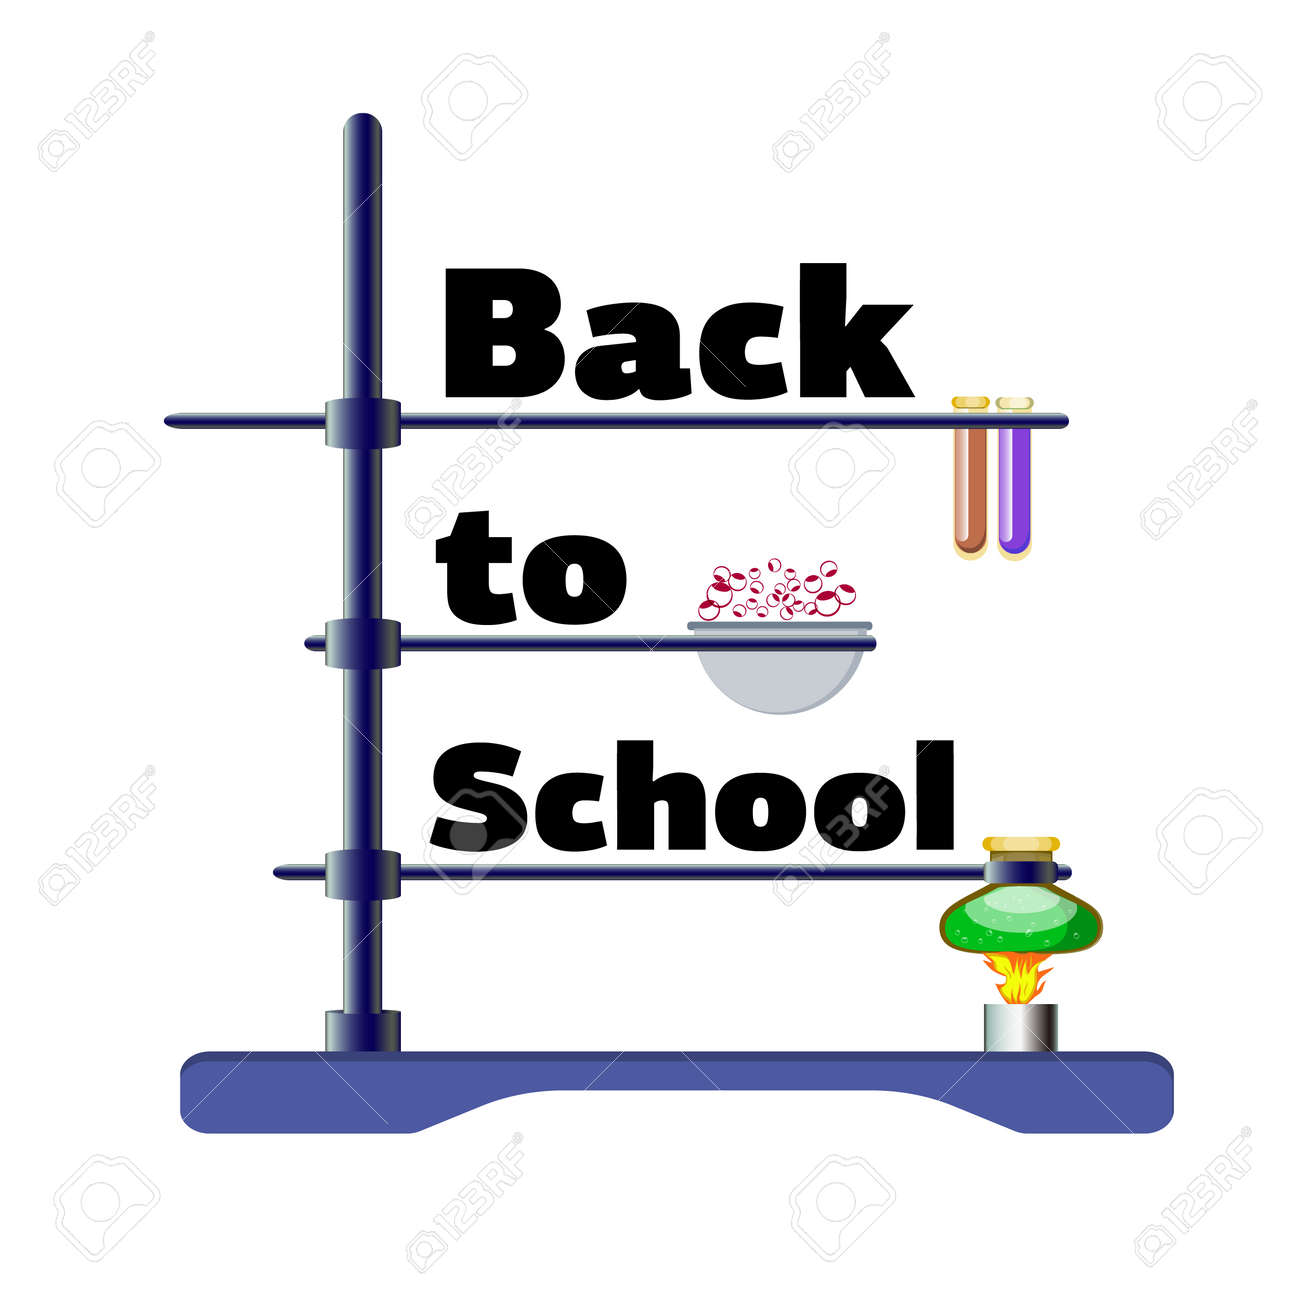 Inscription Back to school with instruments for chemistry lesson, vector illustration isolated on a white background - 103984257